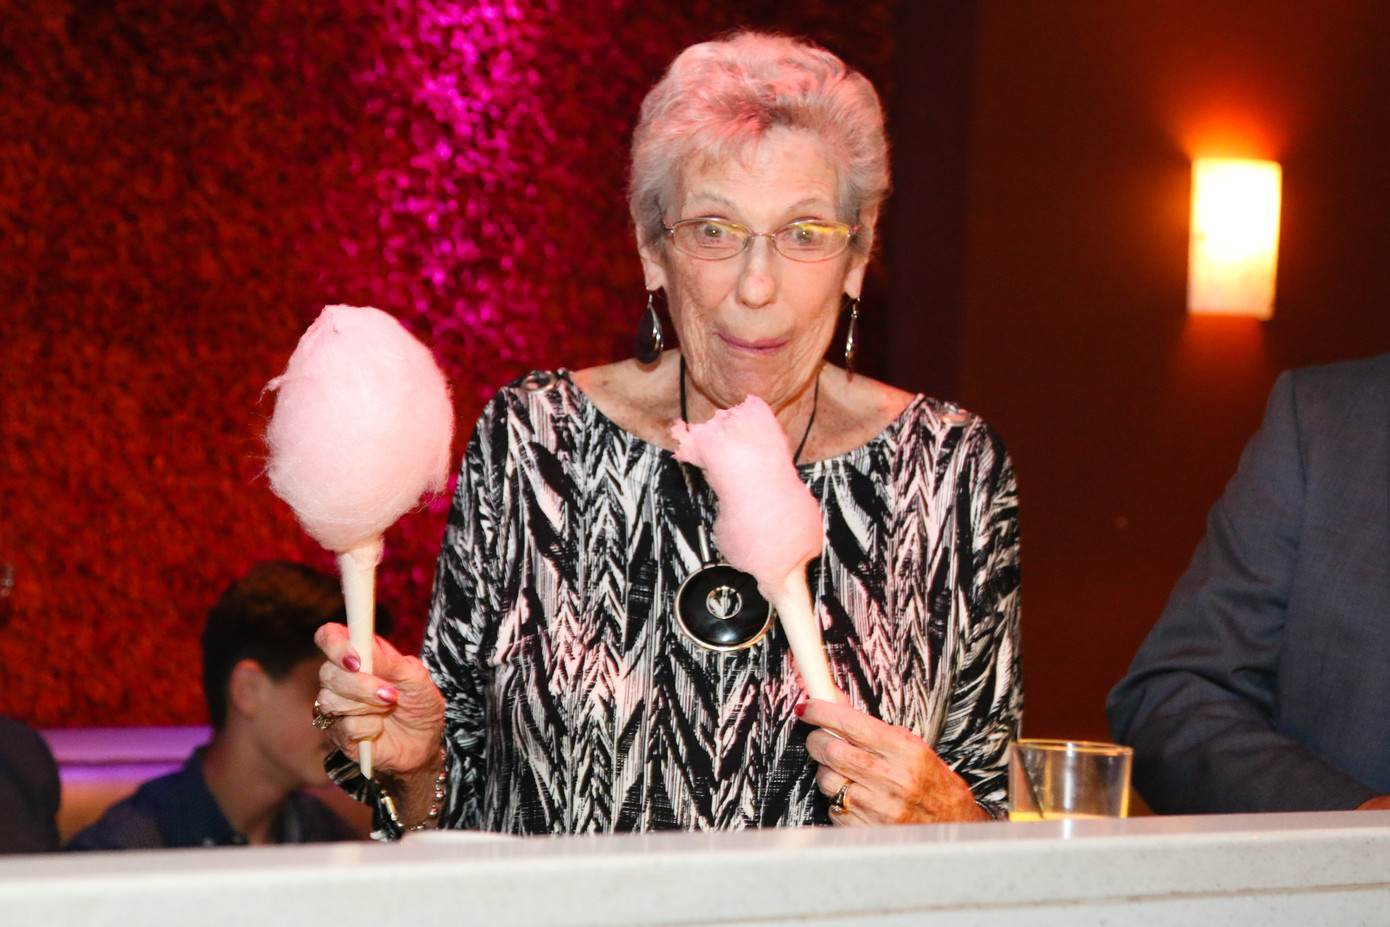 Adult-Woman-Eating-Cotton-Candy.jpg